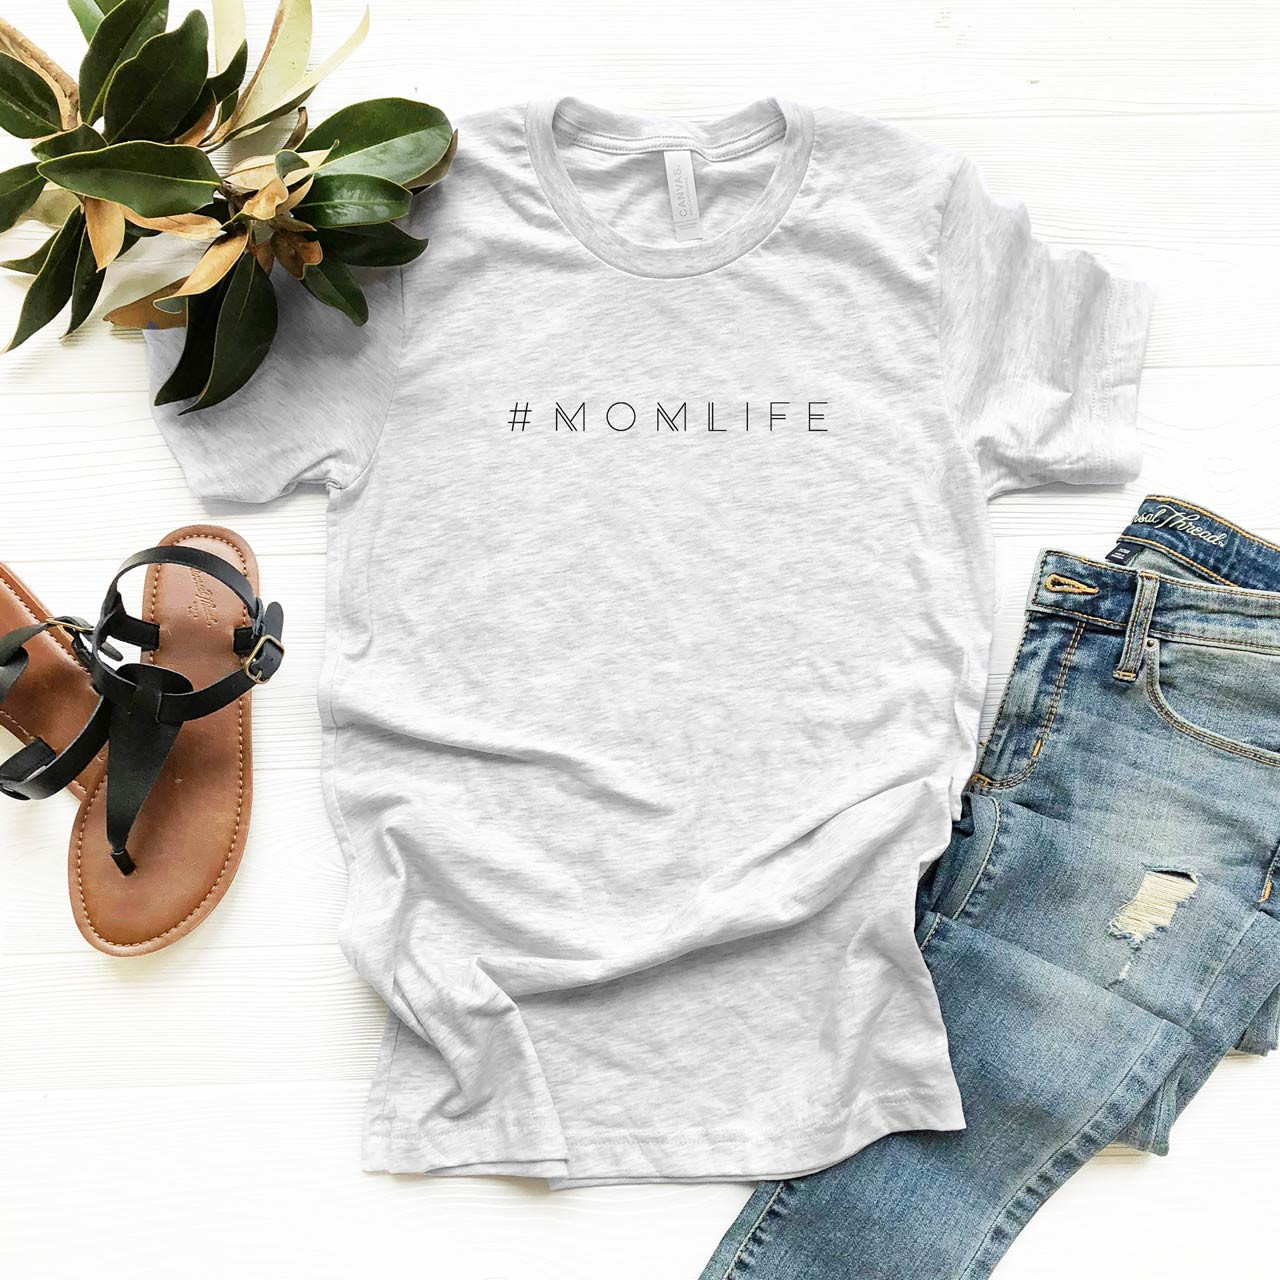 #MOMLIFE Vintage T-Shirt (Black on Light Gray Fleck) from The Printed Home